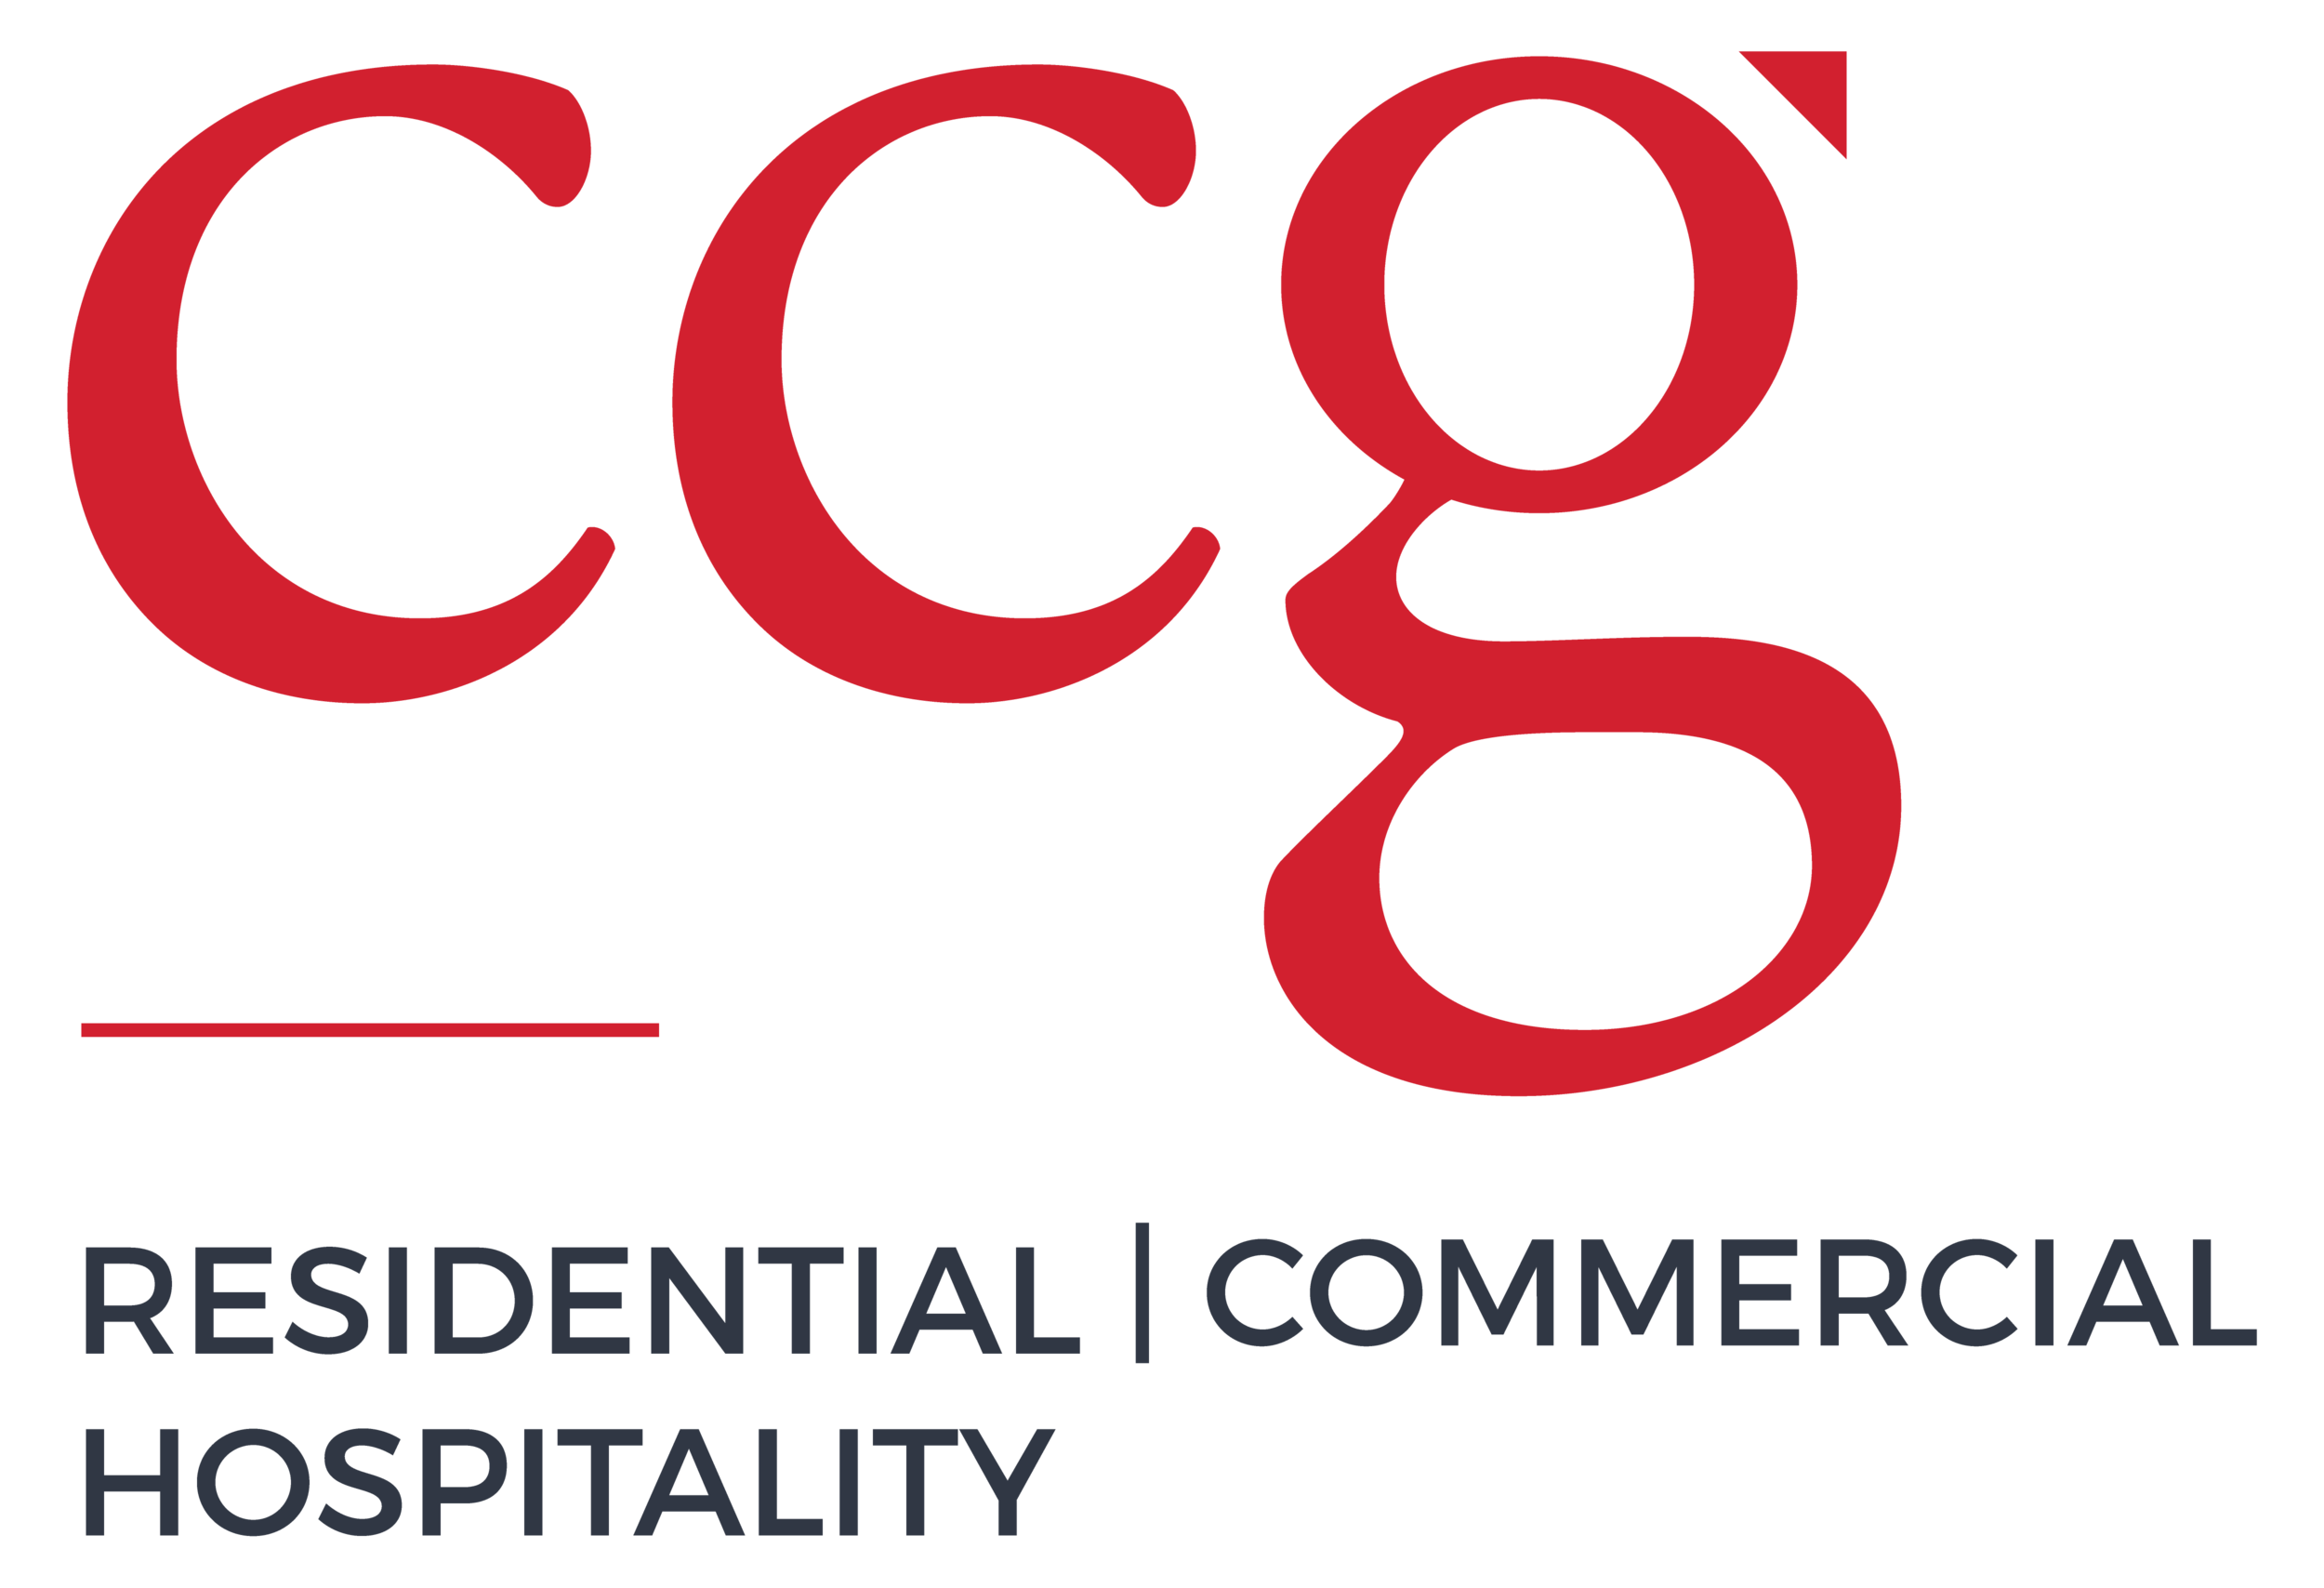 CCG-Residential-Red-Tag-Vertical.png